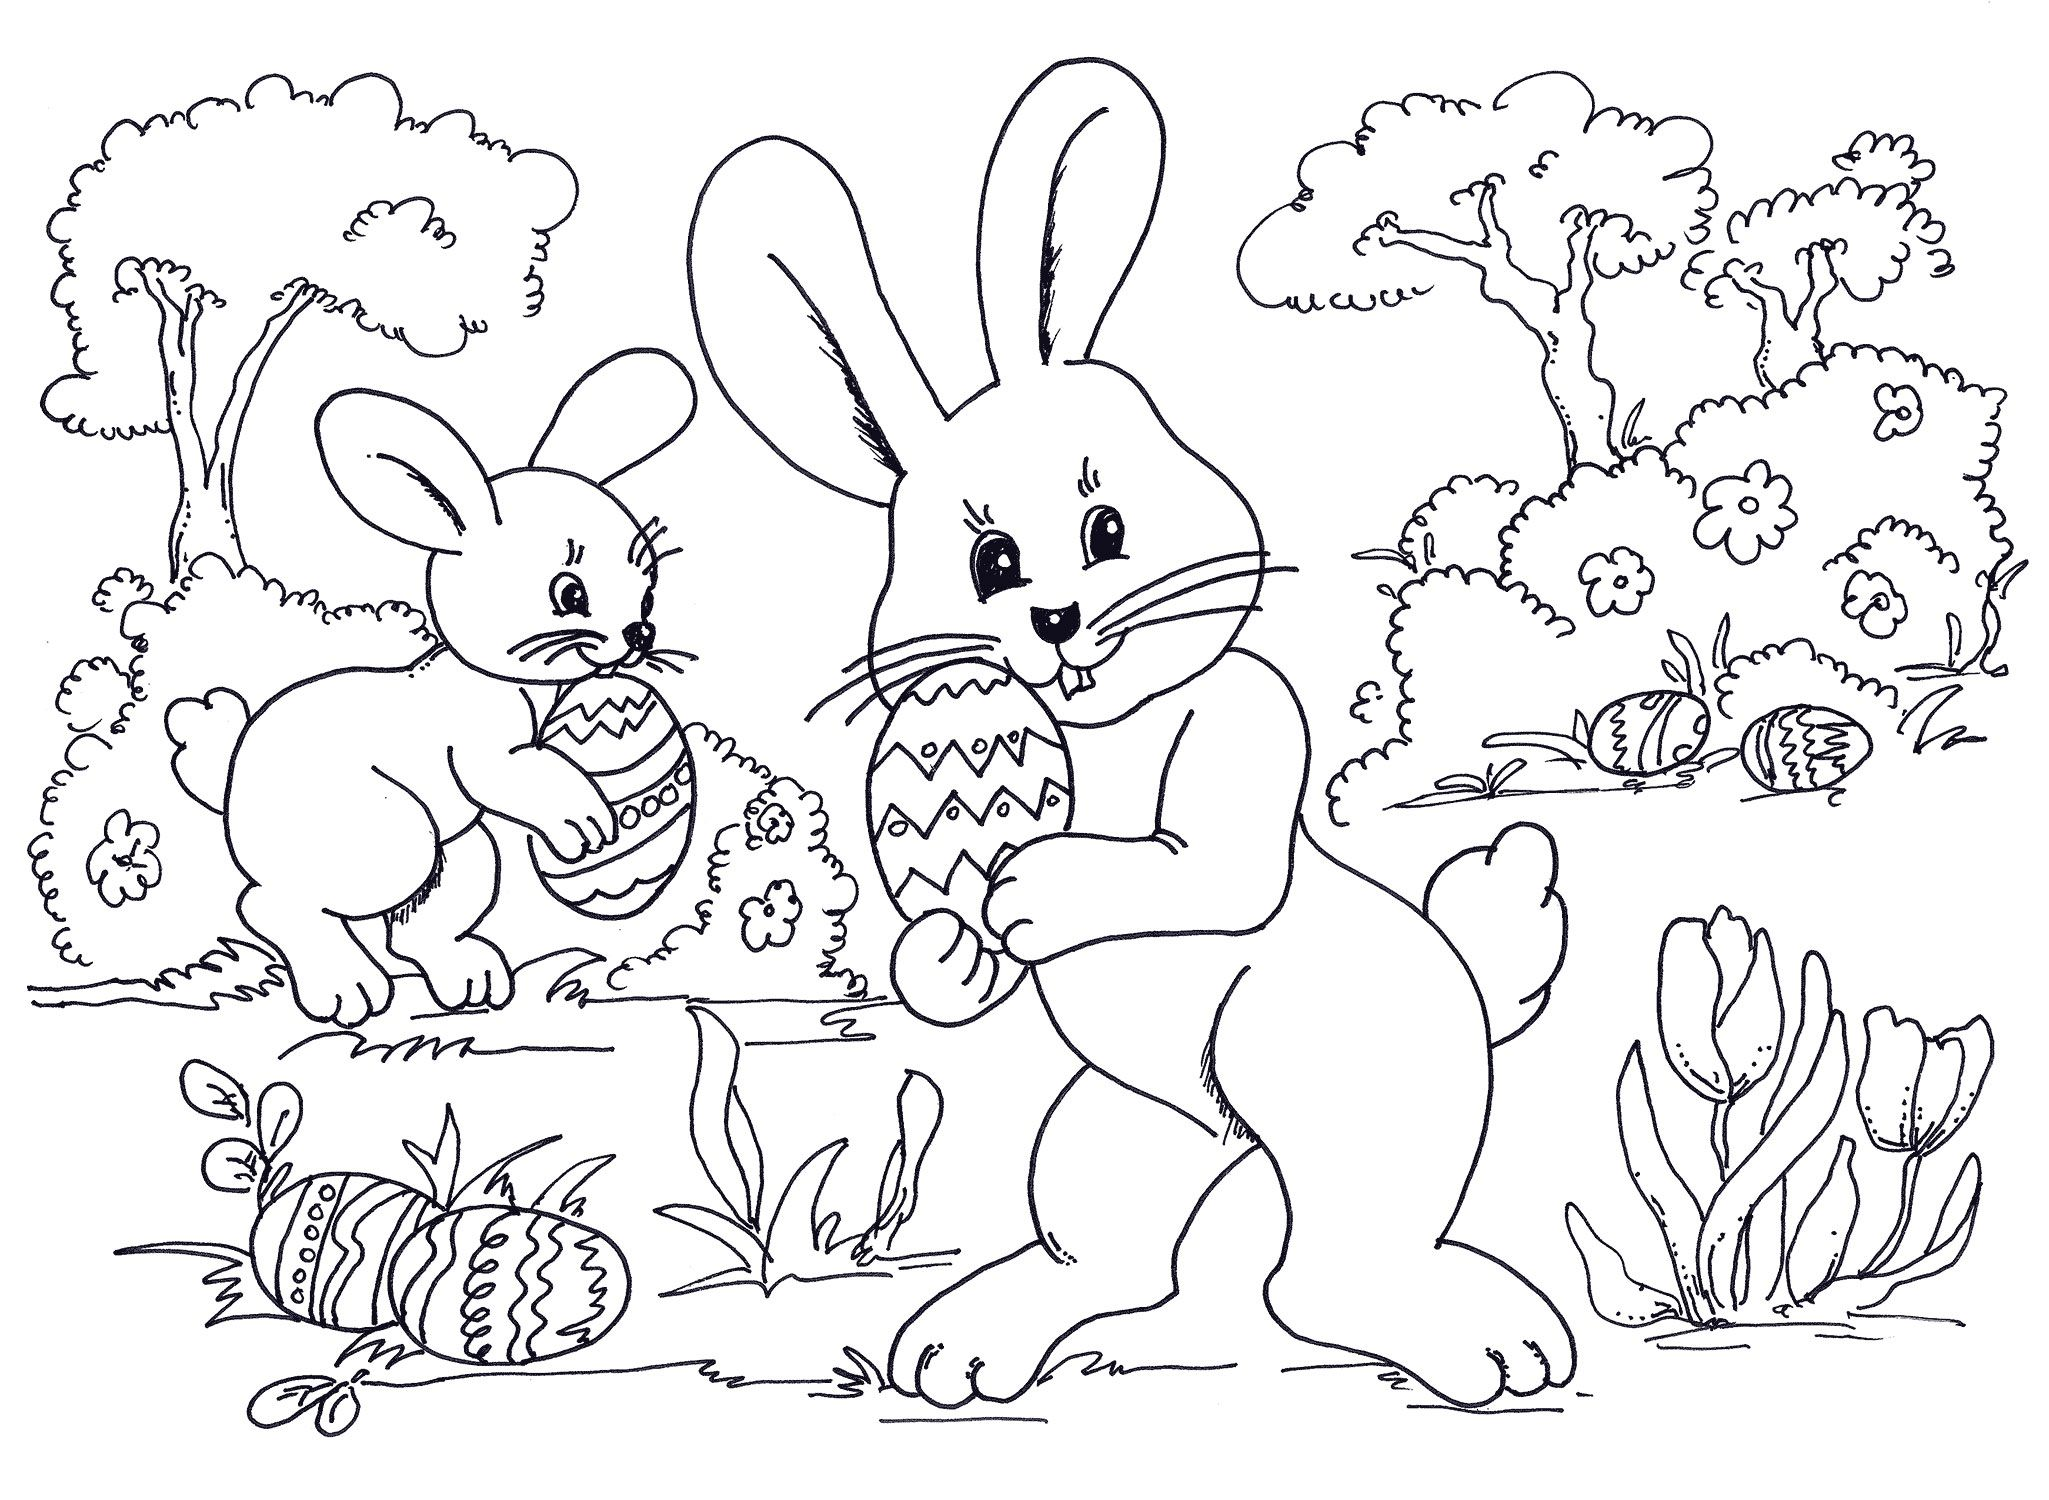 Happy Easter Day Colouring Printable Crafts | Easter coloring ...